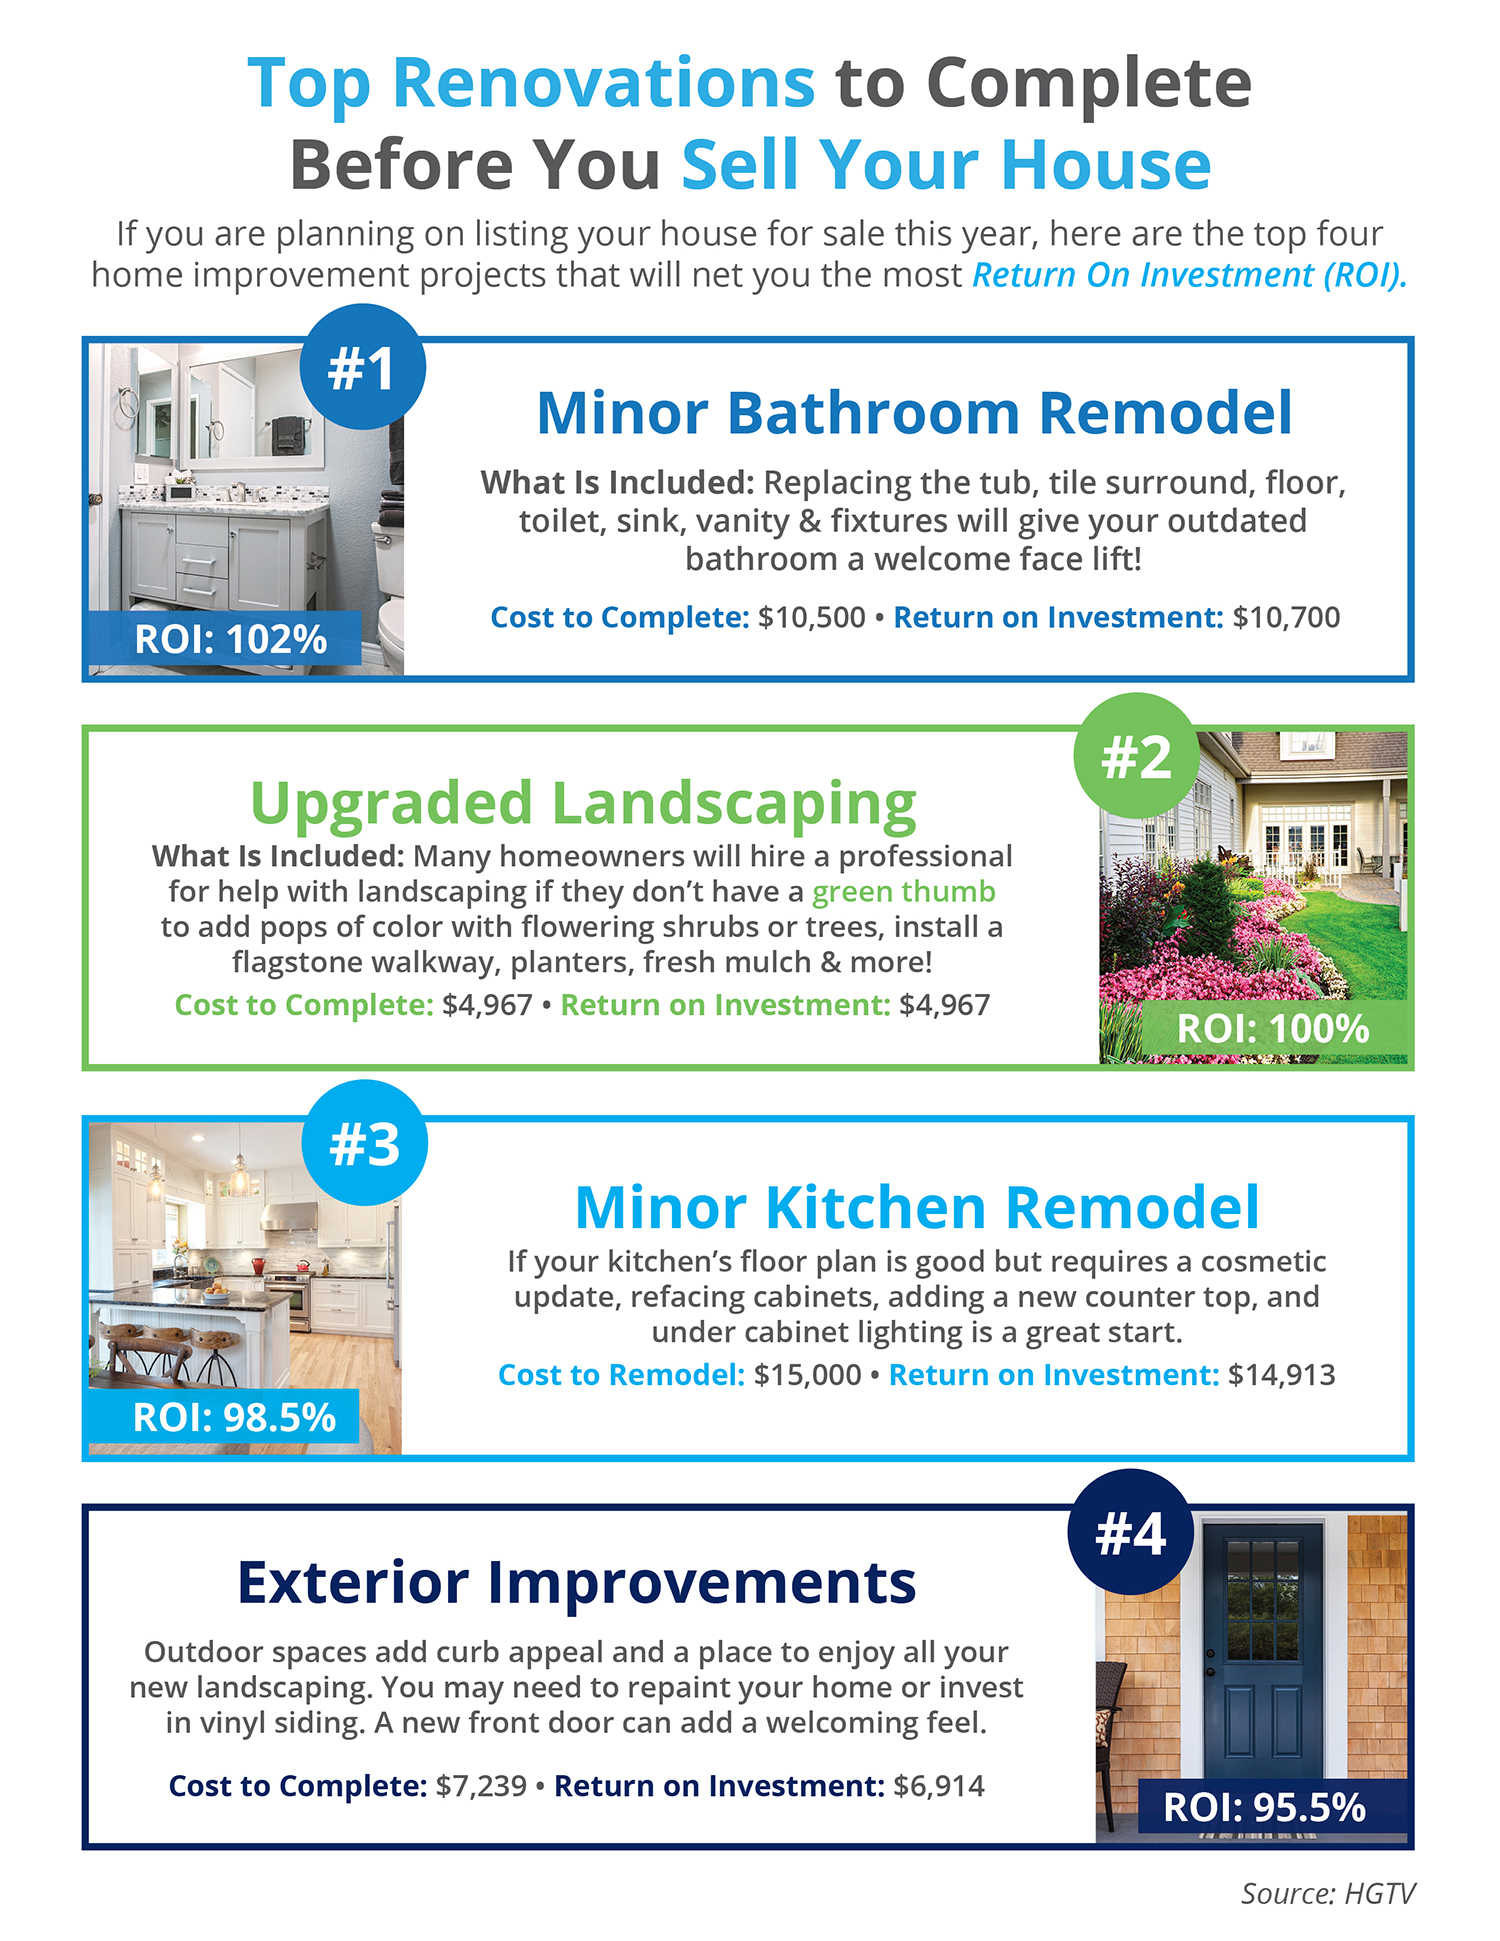 Top Renovations to Complete Before You Sell Your House [INFOGRAPHIC] | Bridge Builders